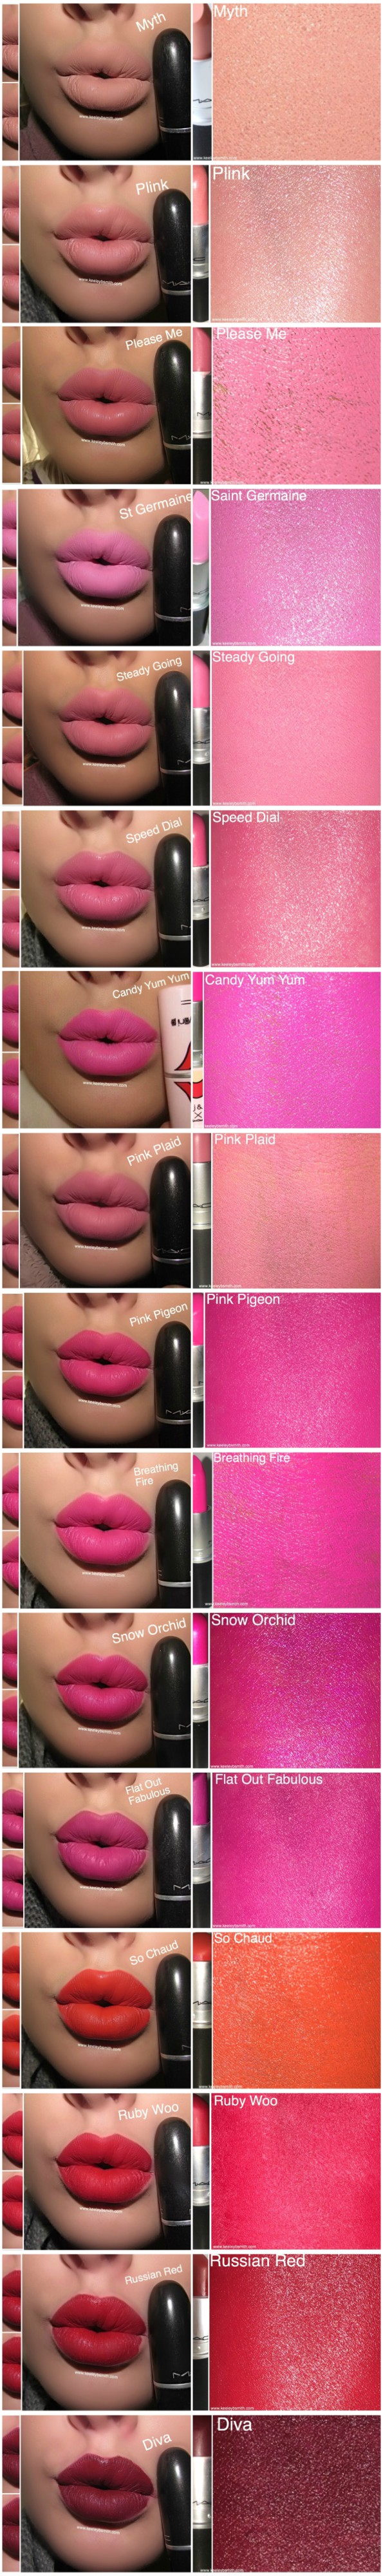 MAC LIPSTICK SWATCH 2